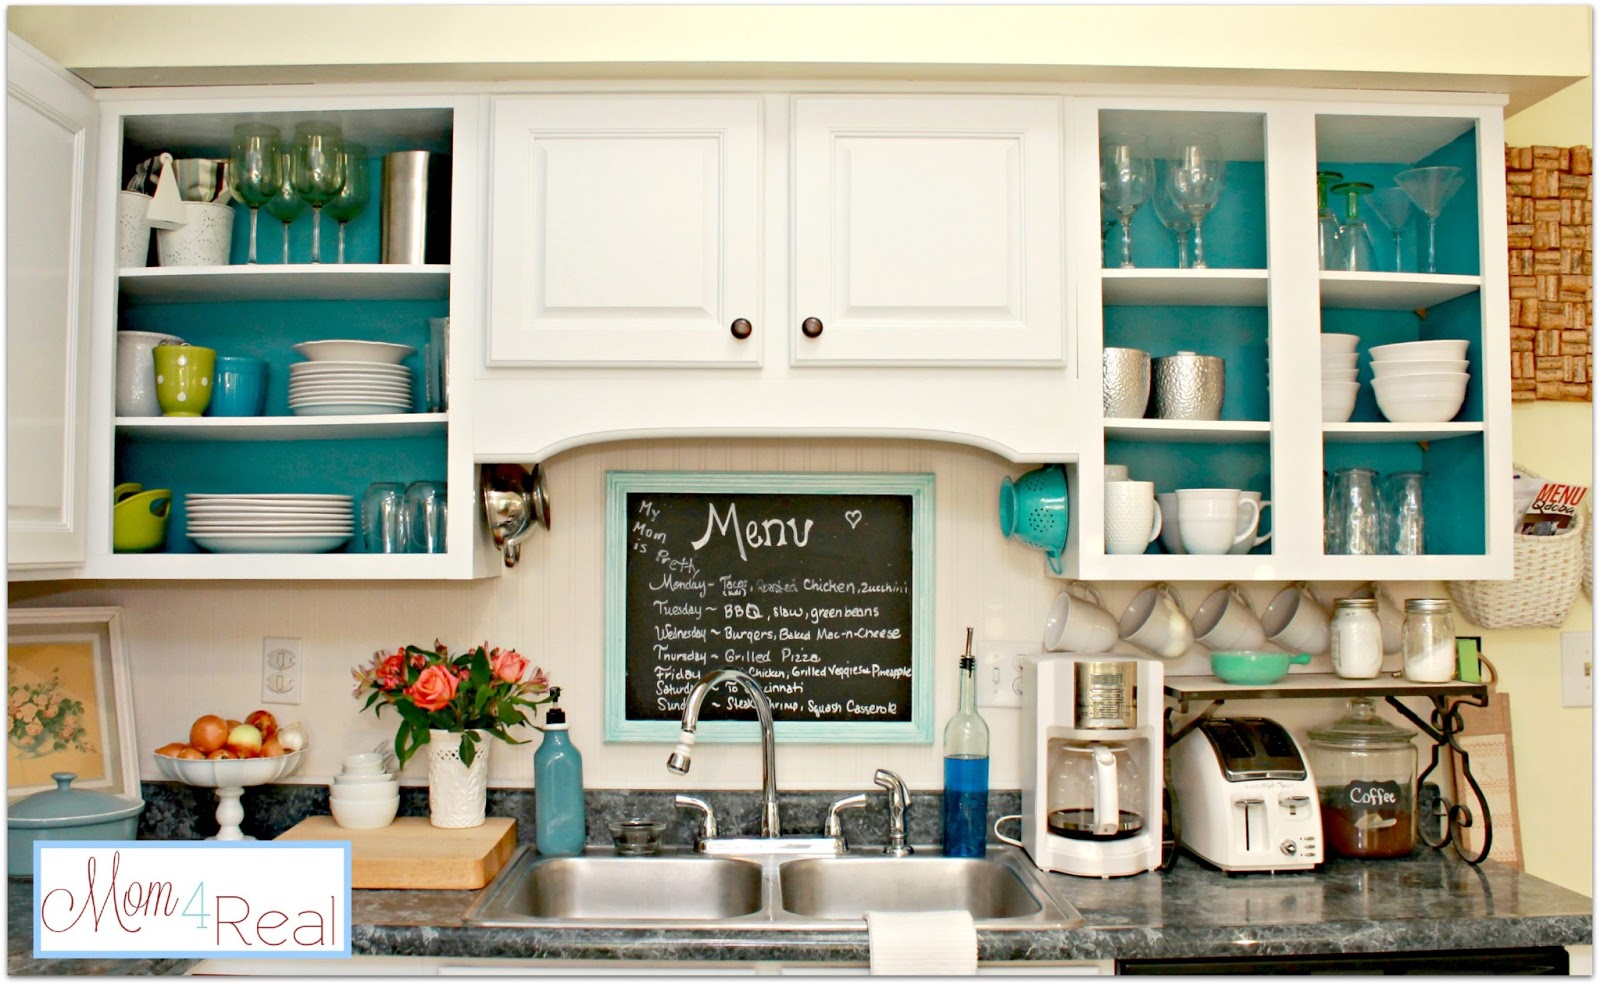 Open Cabinets With White, Aqua, Lime Green, & Silver Accents ... on painting cabinets white, painting wooden cabinets, painting kitchen cabinet doors only, painting kitchen cabinet doors colors, painting cabinets without sanding, painting kitchen drawers, painting inside bookshelves, painting an old kitchen, painting inside walls, painting cabinets two different colors, color inside cabinets, painting inside painting, painting inside glass, painting inside fireplaces, painting inside drawers, painting pressboard cabinets, painting inside doors, painting inside of bookcases, painting stained cabinets, painting trailer house cabinets,